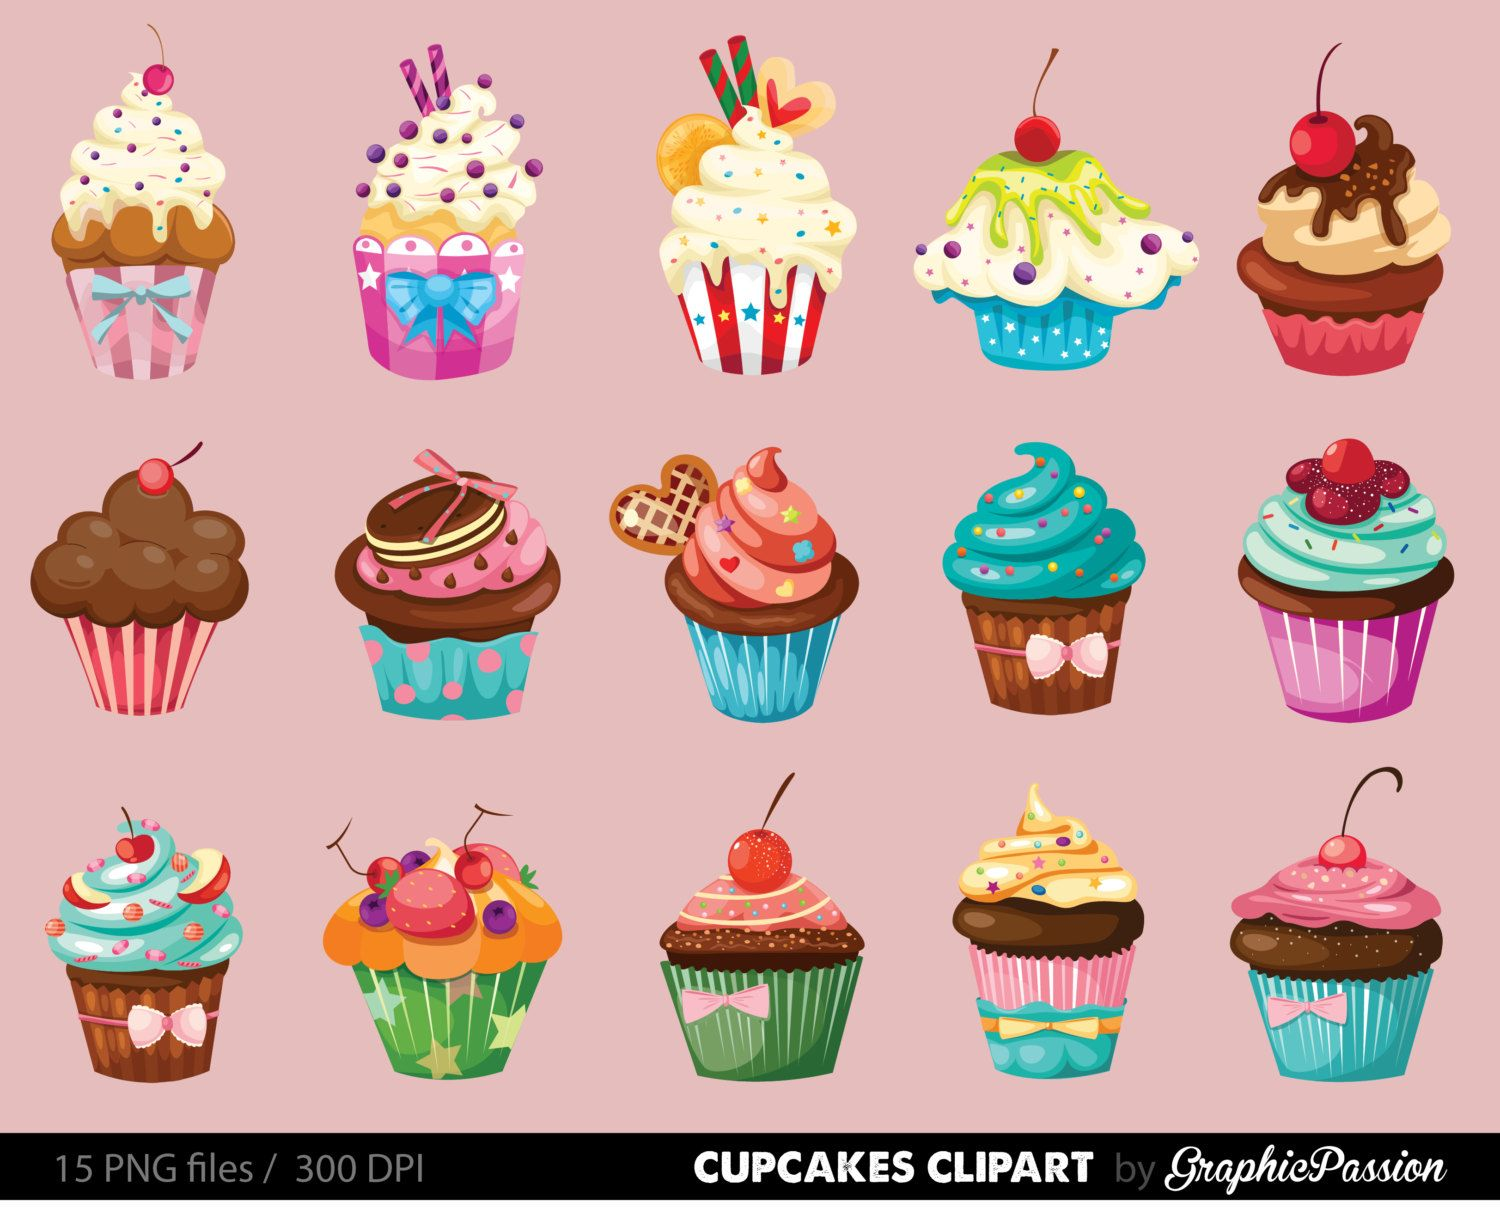 Cupcakes clipart digital cupcake clip art cupcake digital.